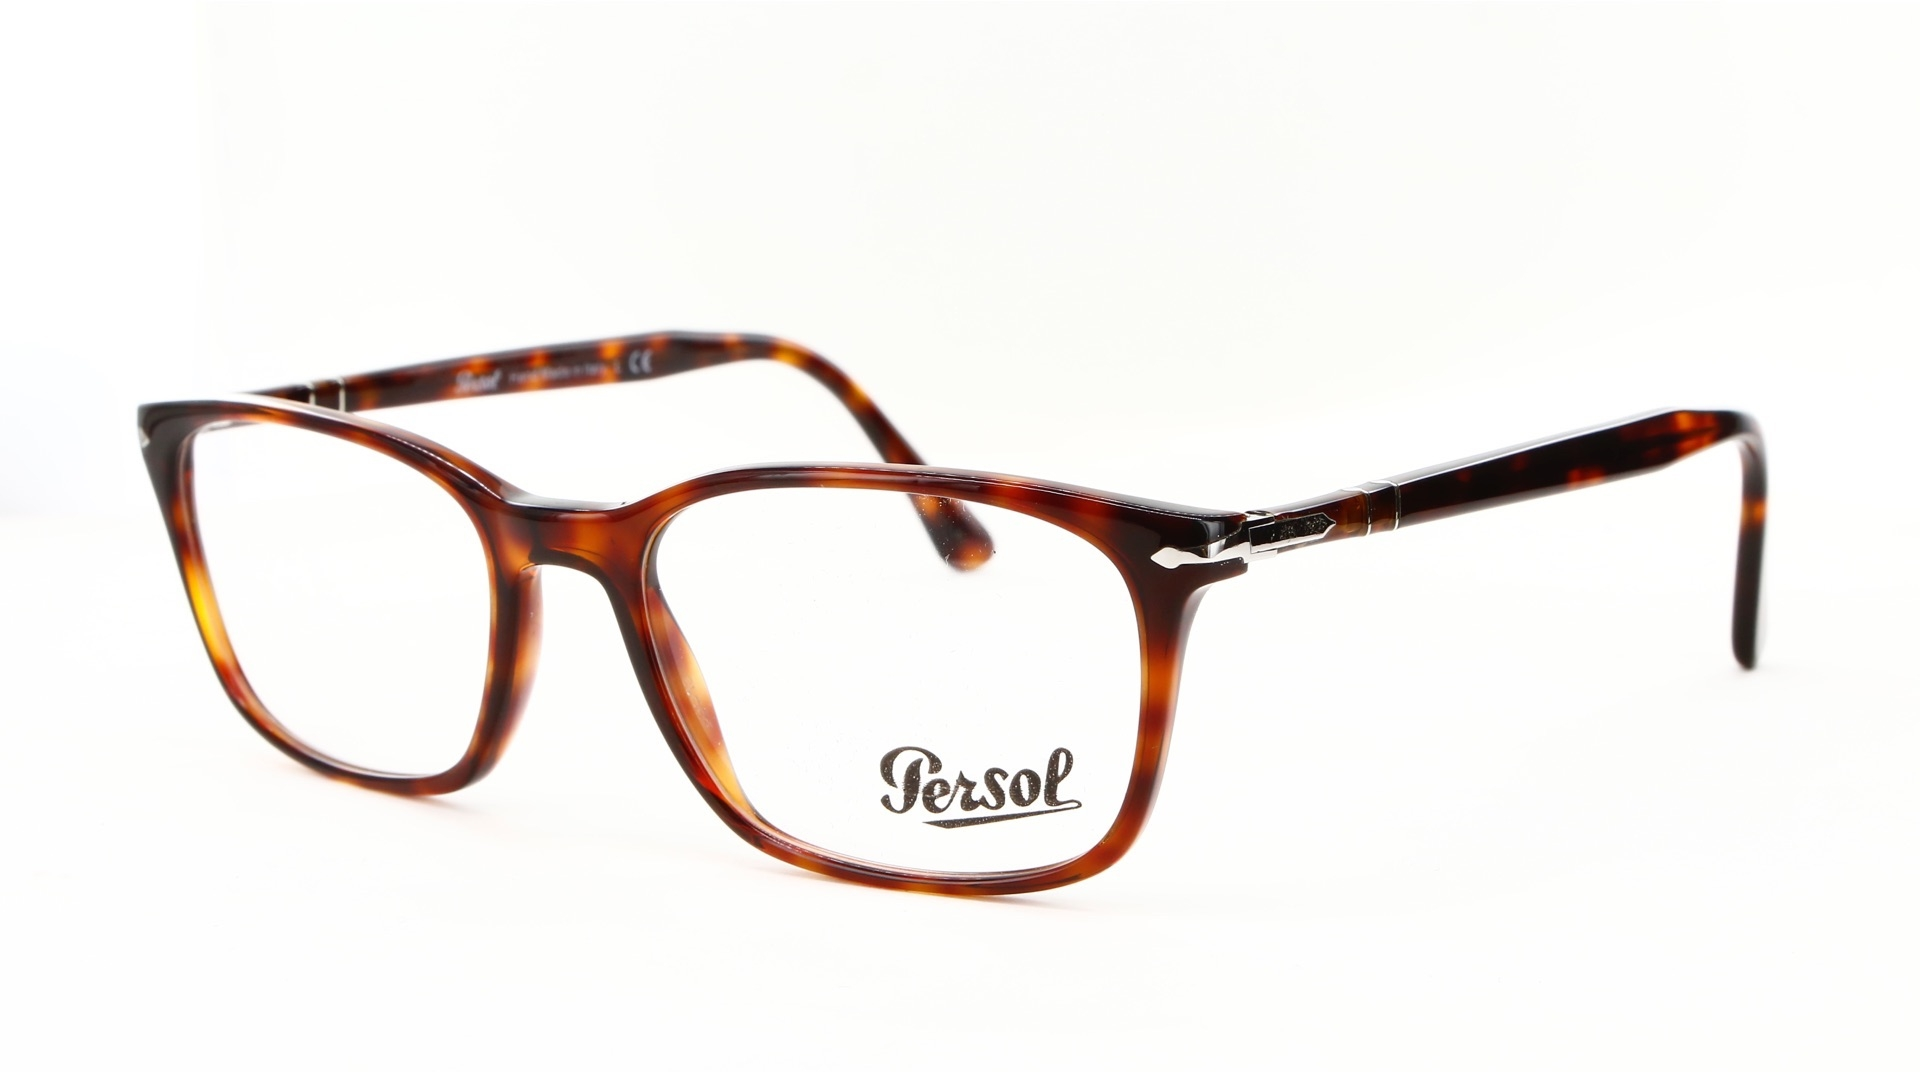 Persol - ref: 80791